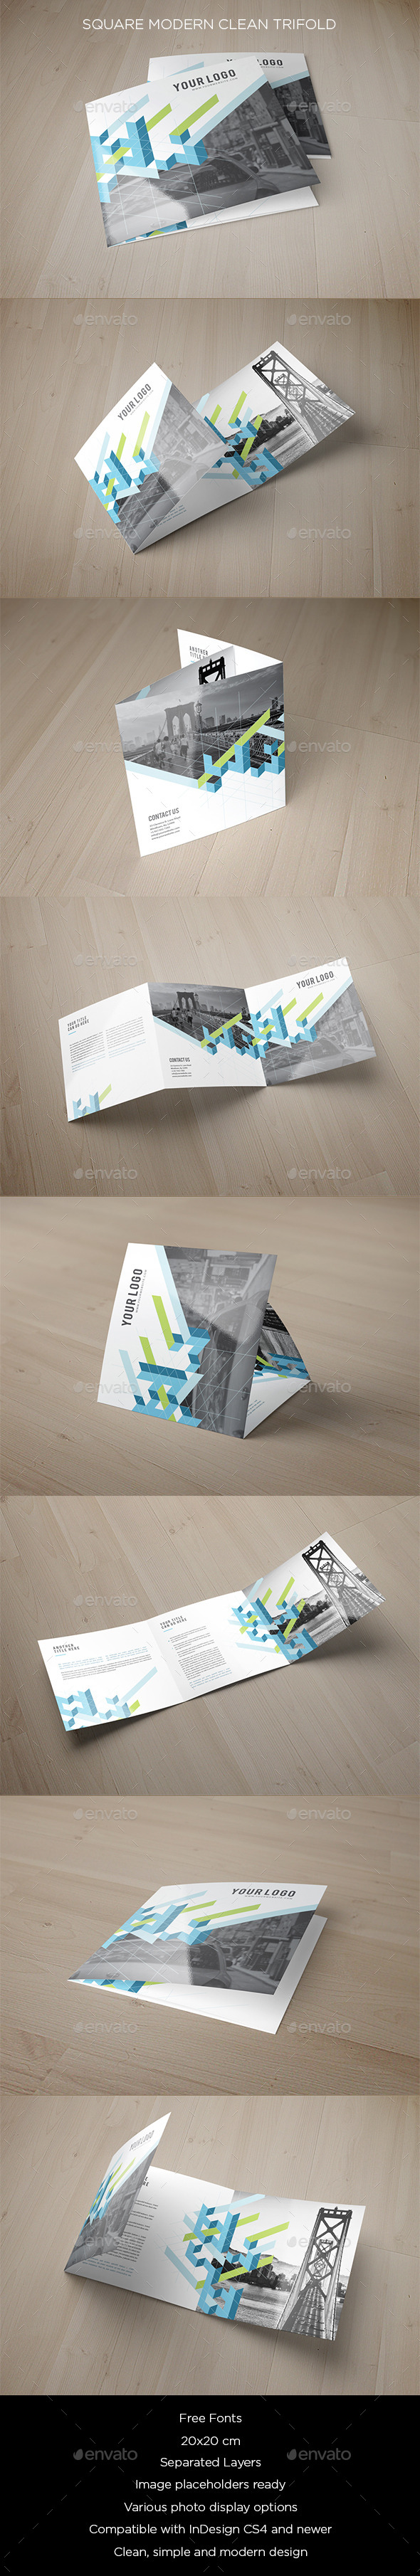 Square Modern Clean Trifold - Brochures Print Templates